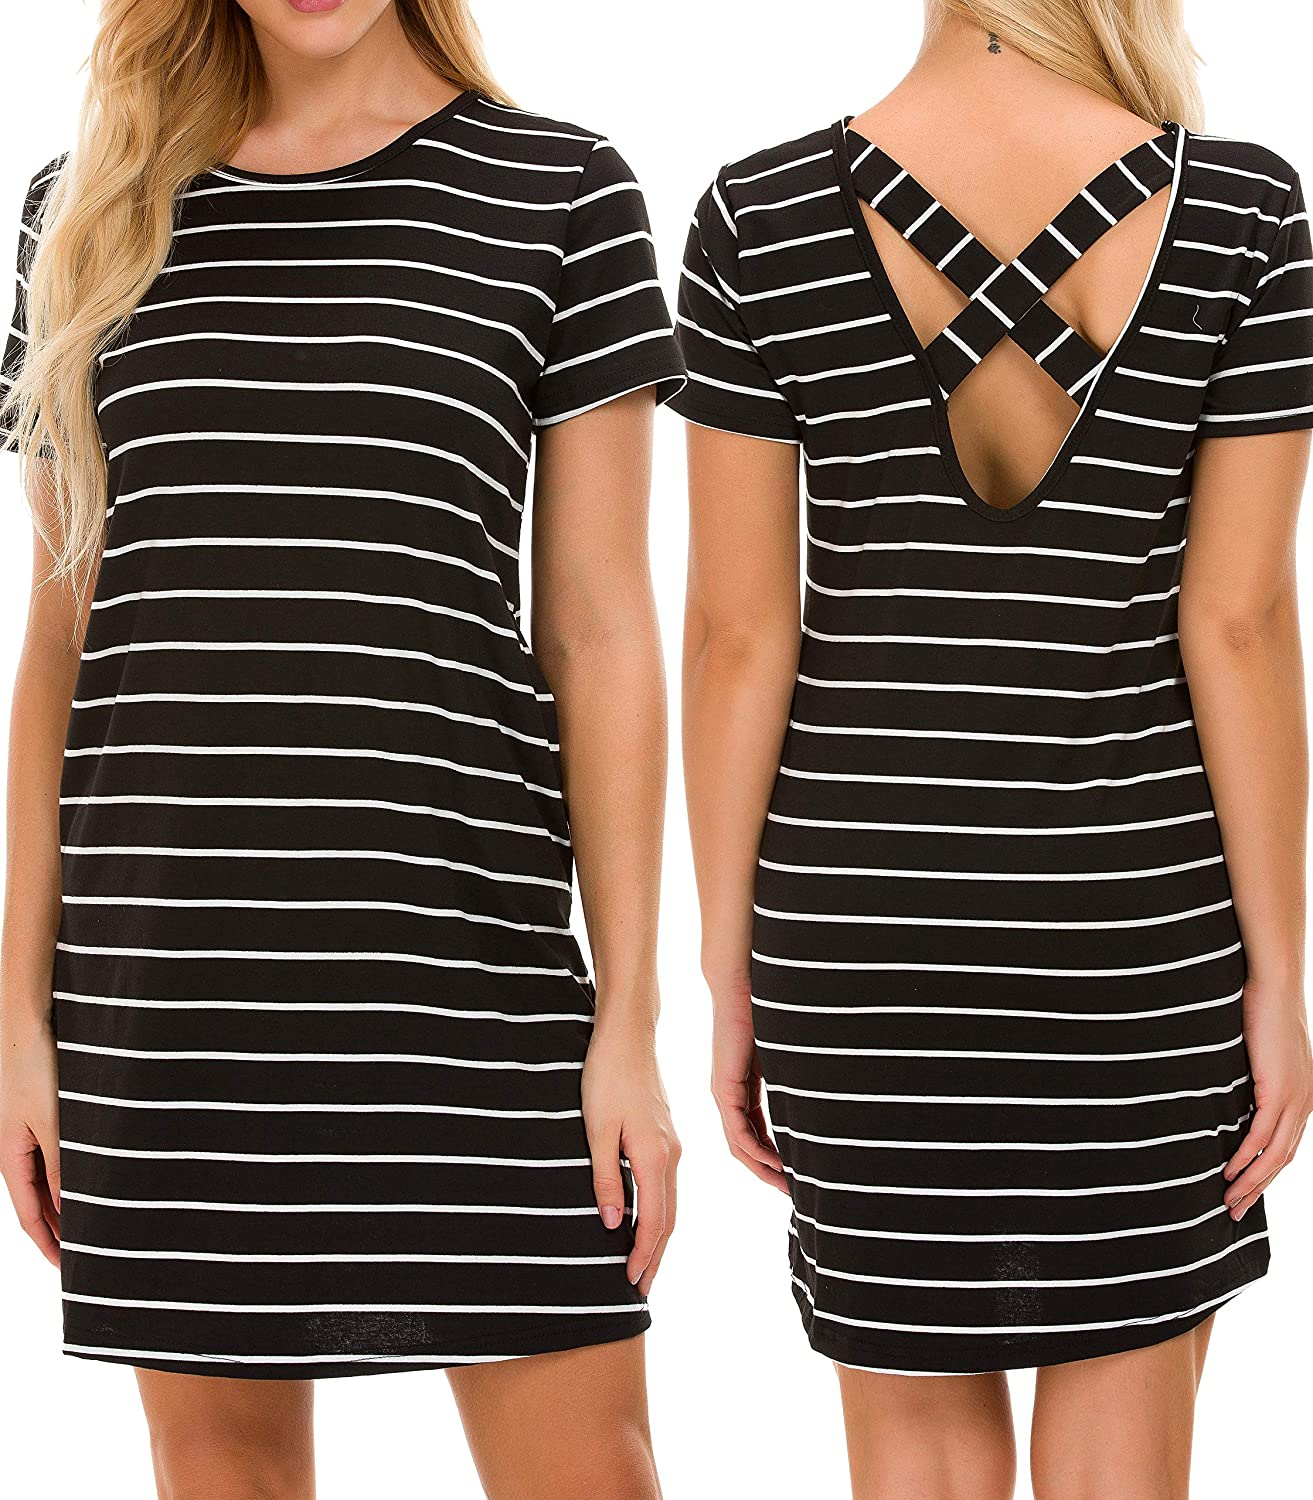 f7fad3a693d5 T-shirt dress with striped simple classic design, soft and stretchy  material make it comfortable to wear. Knee length dress with short sleeve,line  striped ...